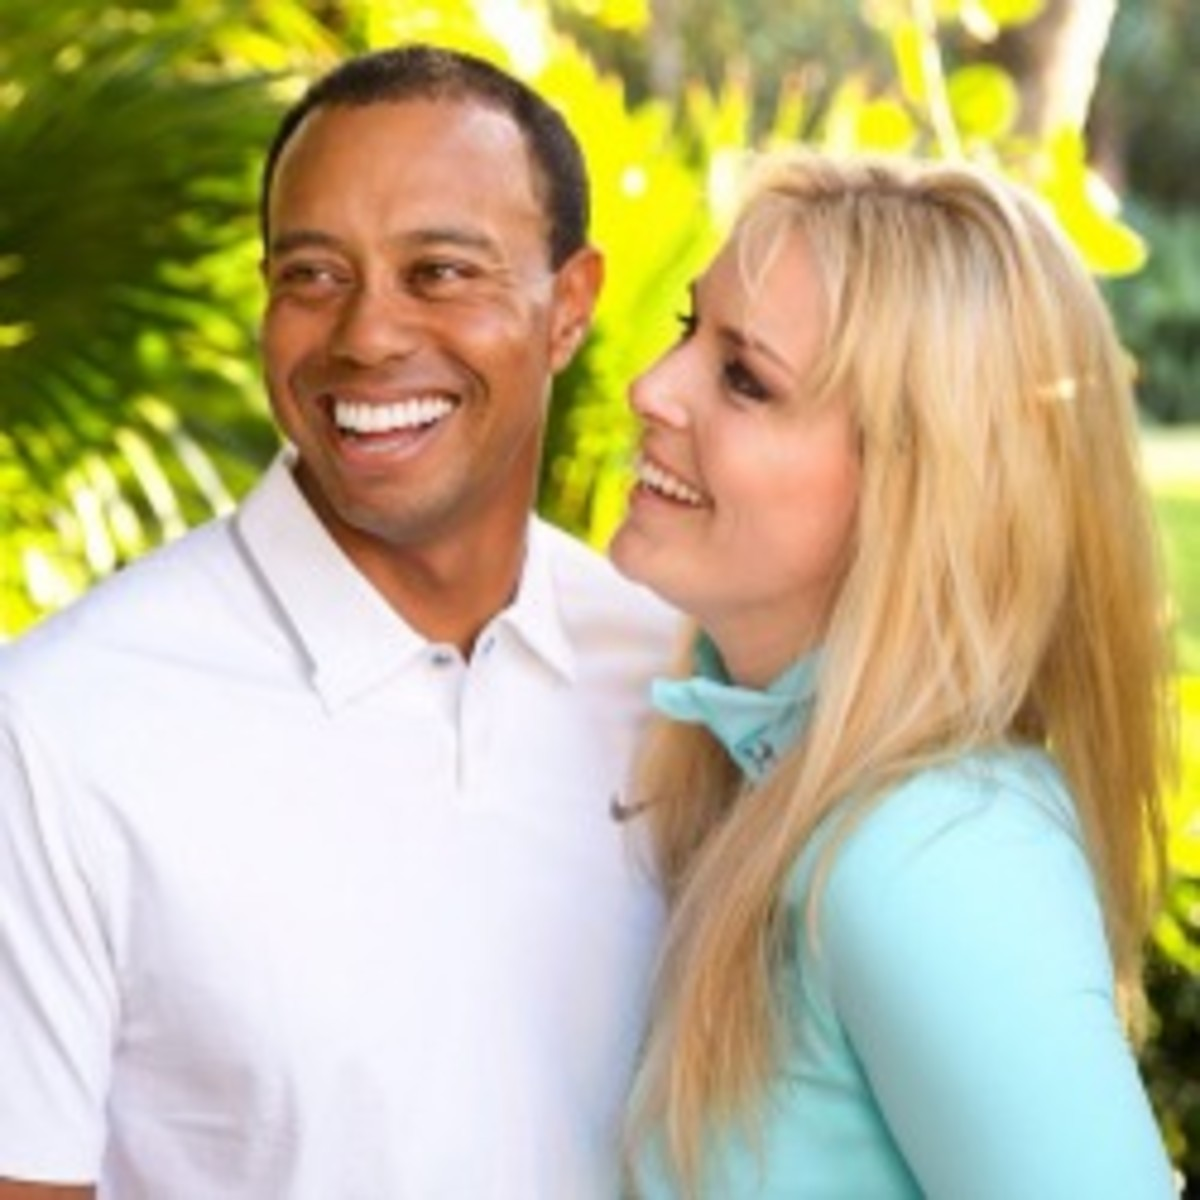 Tiger Woods and Lindsey Vonn are now dating.